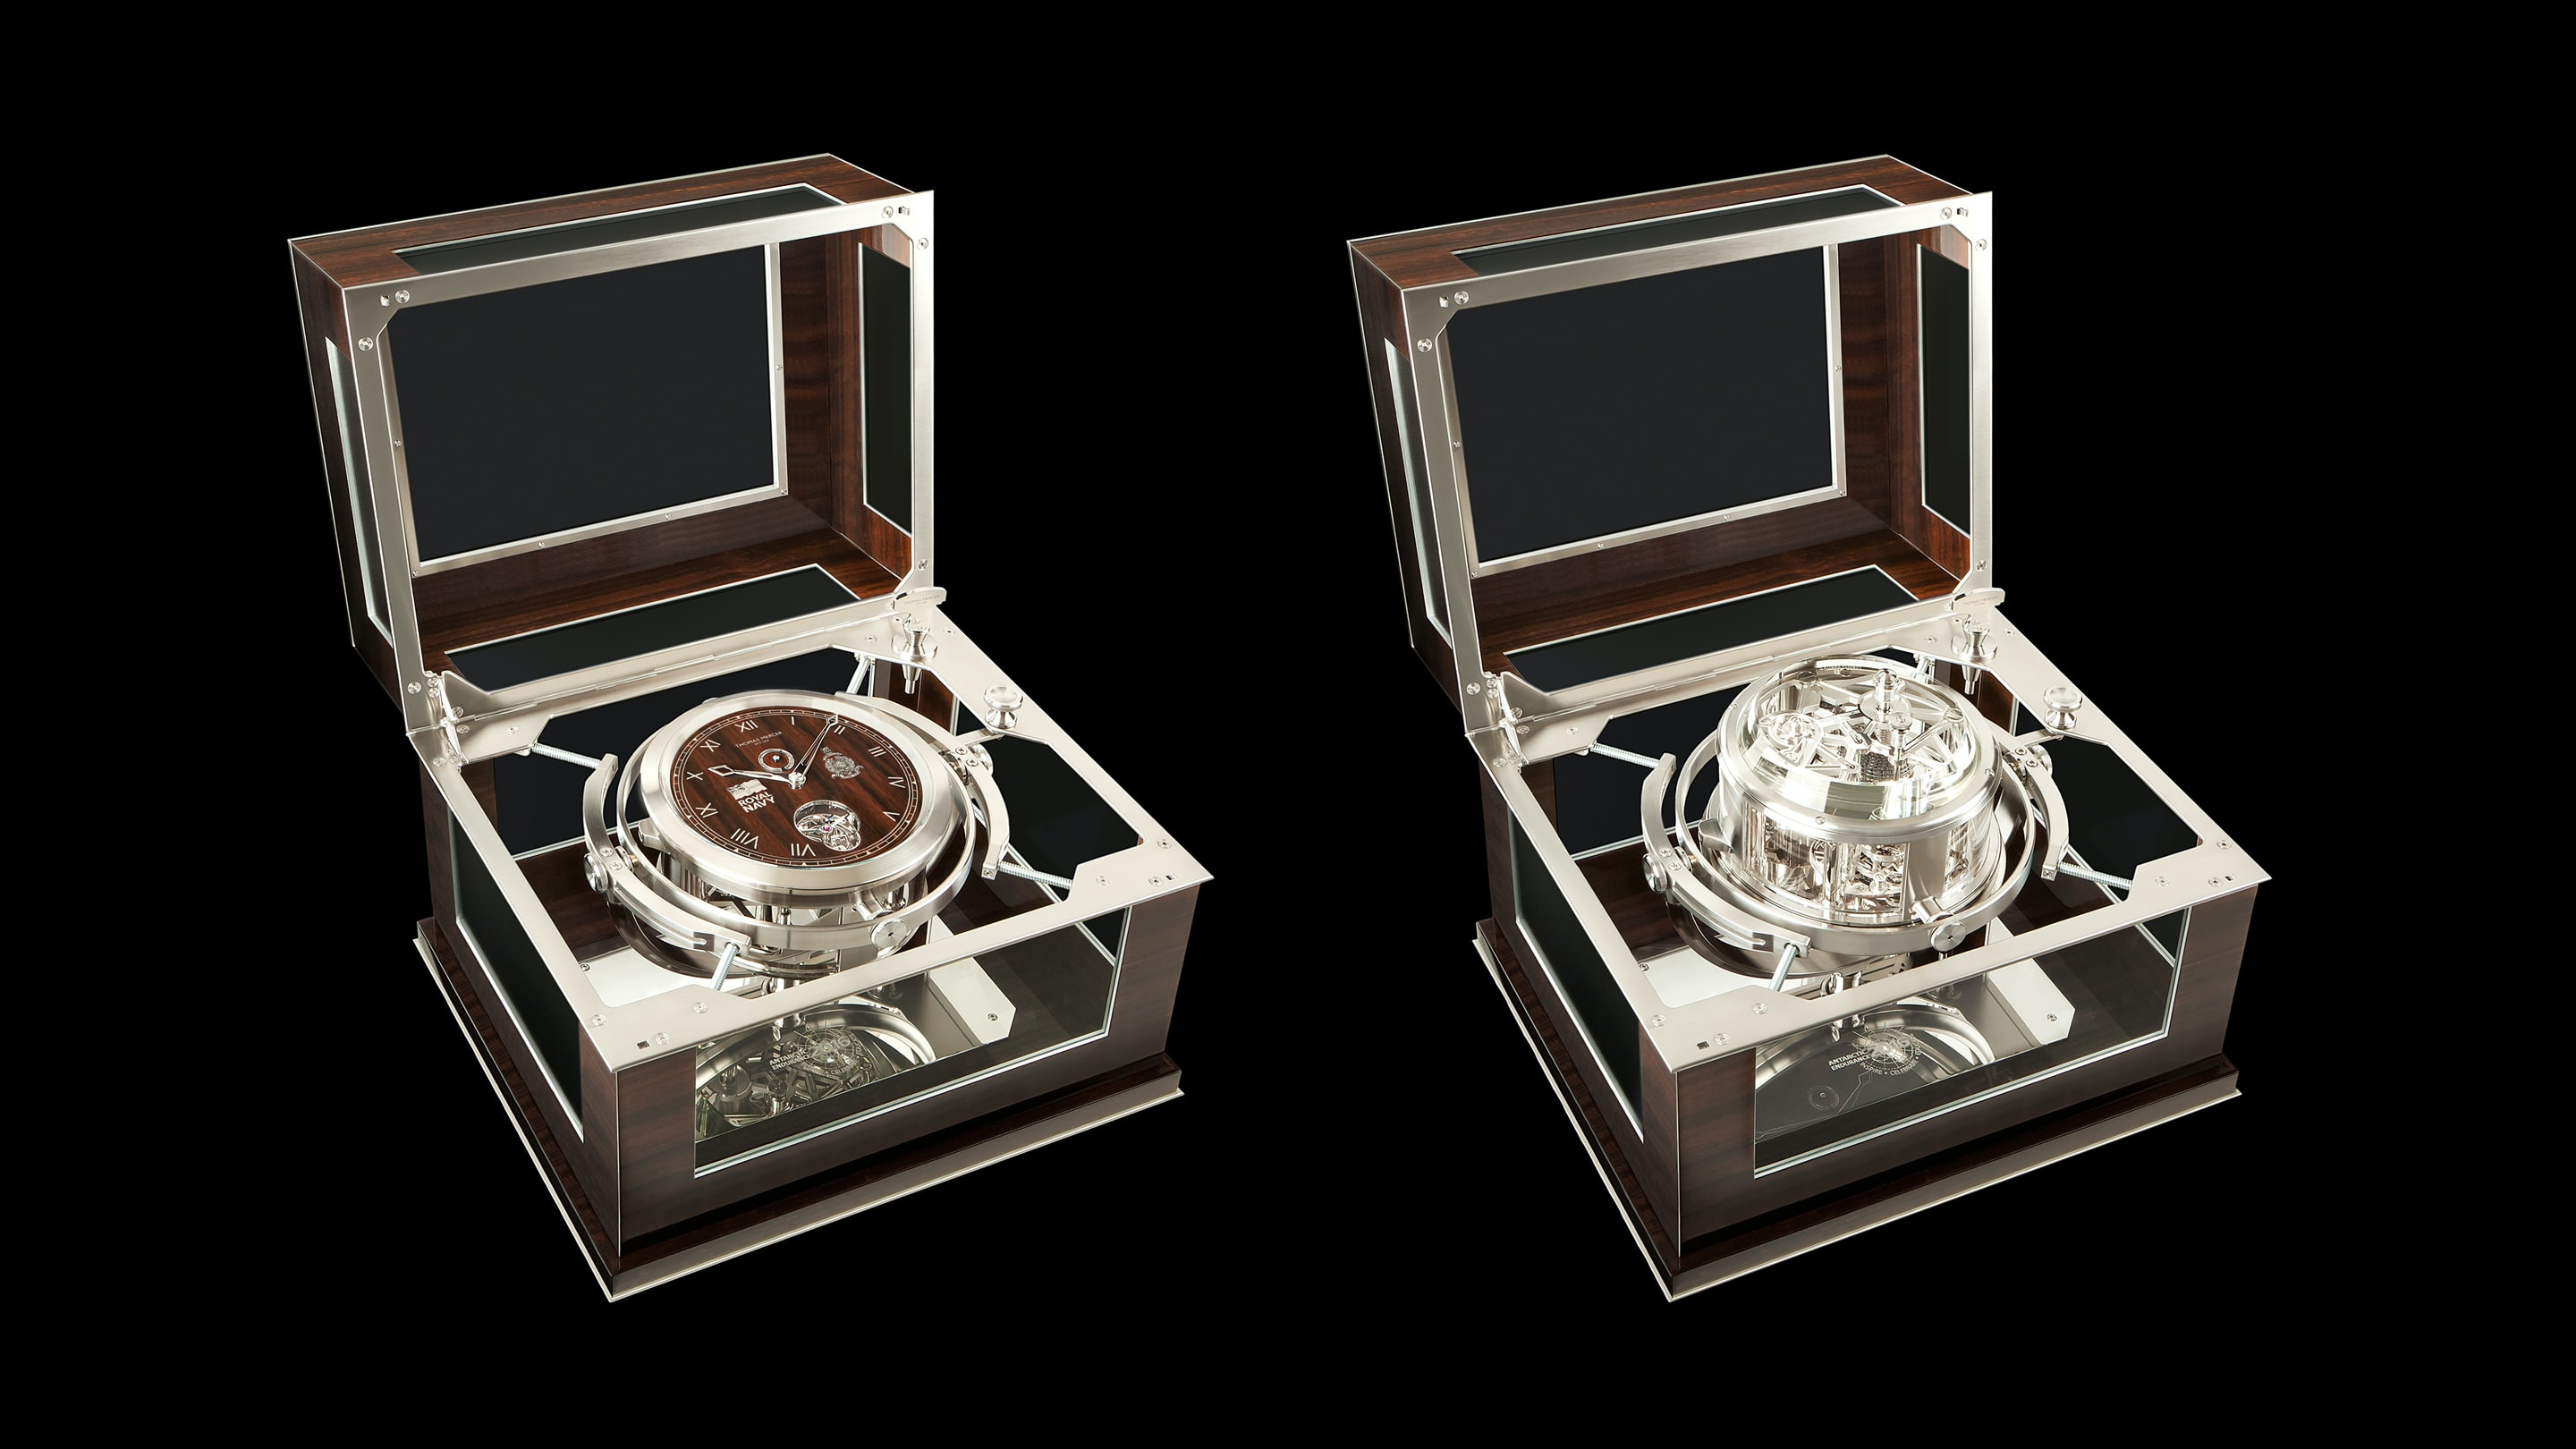 Introducing: A Thomas Mercer One-Off Marine Chronometer Made To Accompany A Re-Creation Of Shackleton's Epic Voyage